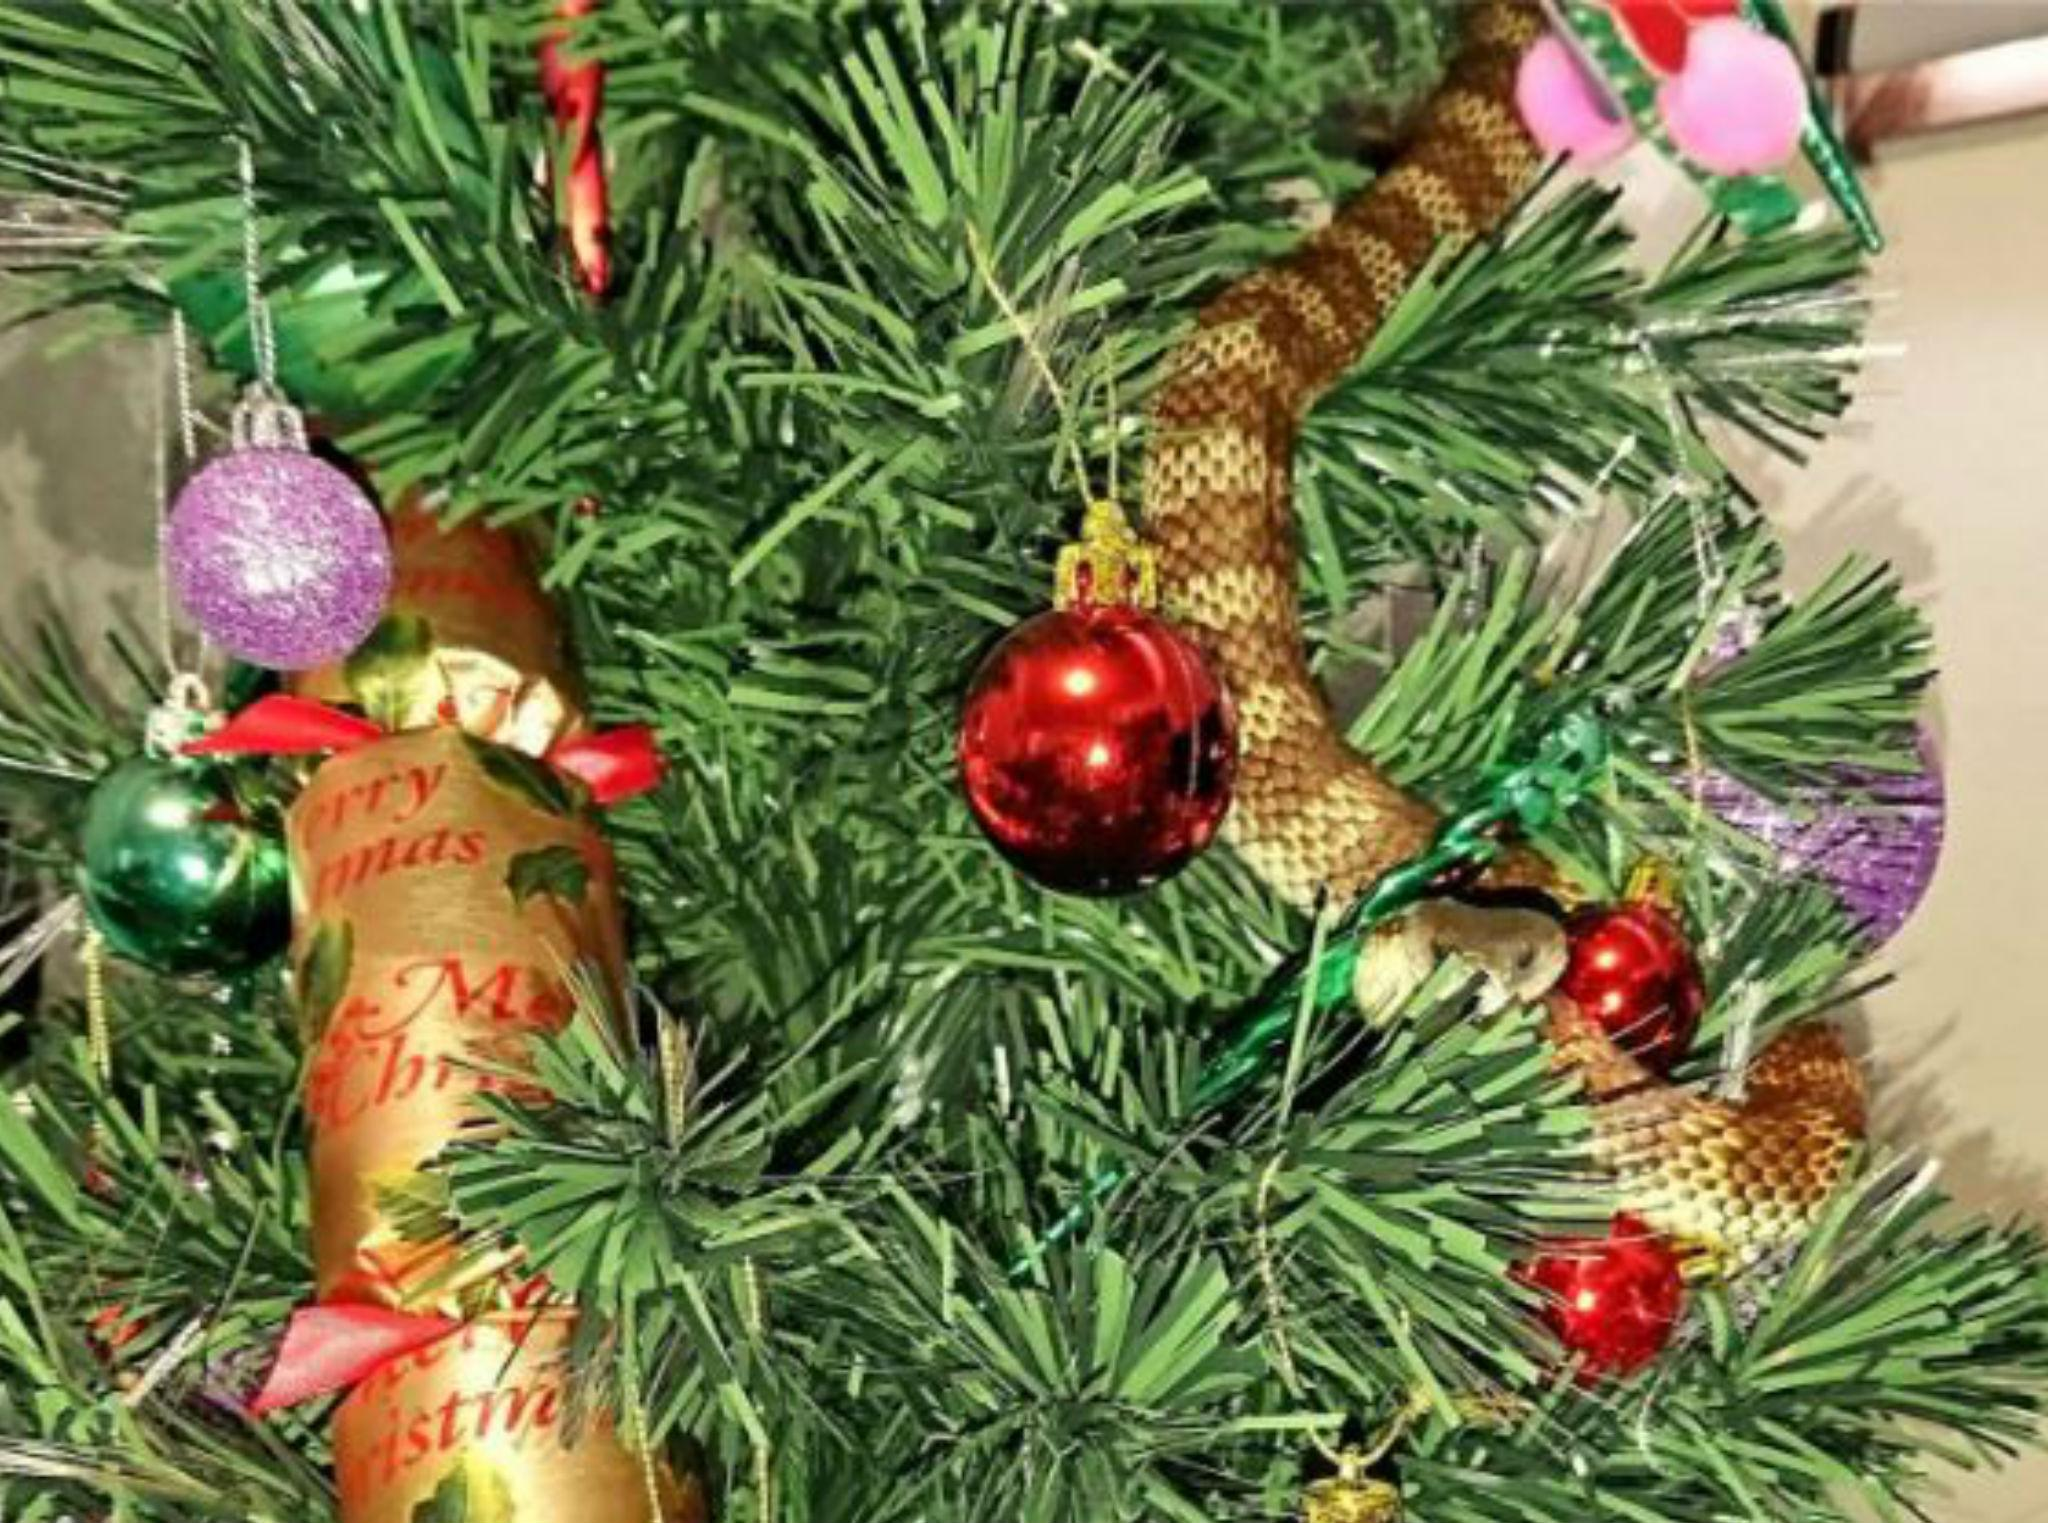 Christmas Trees and Trappings Can Fan Fire Risk